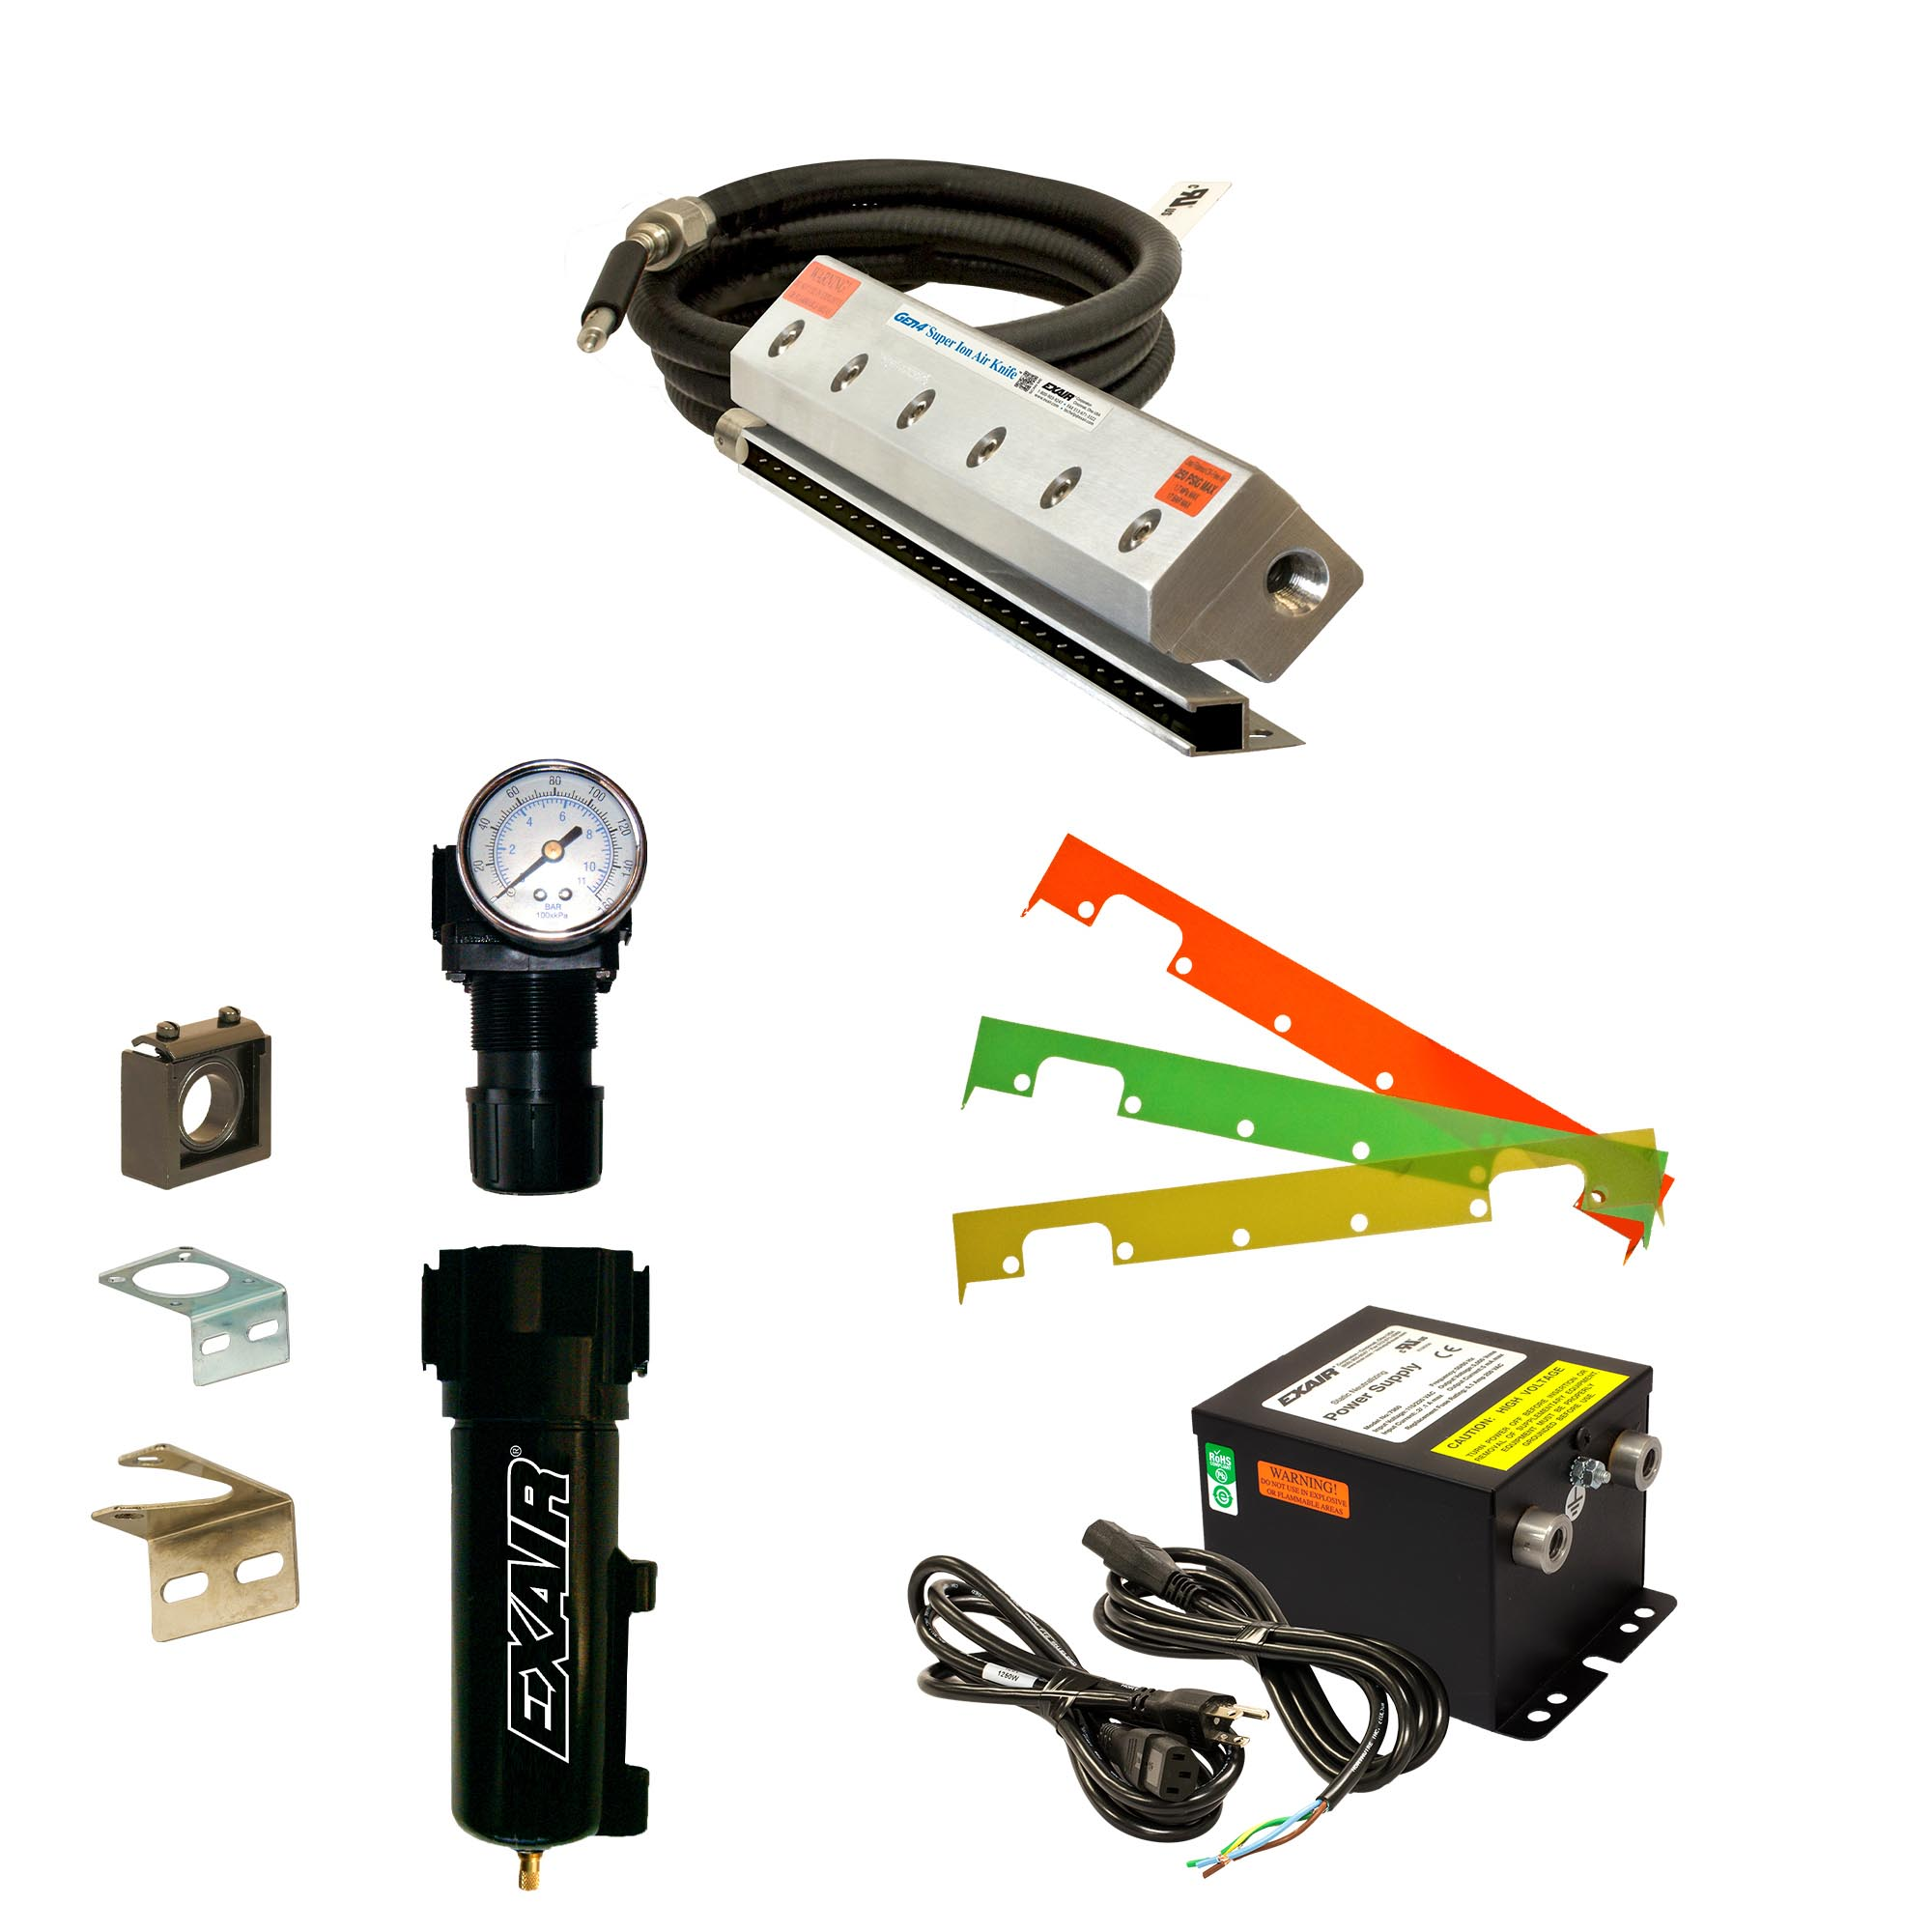 Gen4 Super Ion Air Knife Kits include the Gen4 Super Ion Air Knife, Gen4 Power Supply, Filter/Separator, Pressure Regulator and shim set.